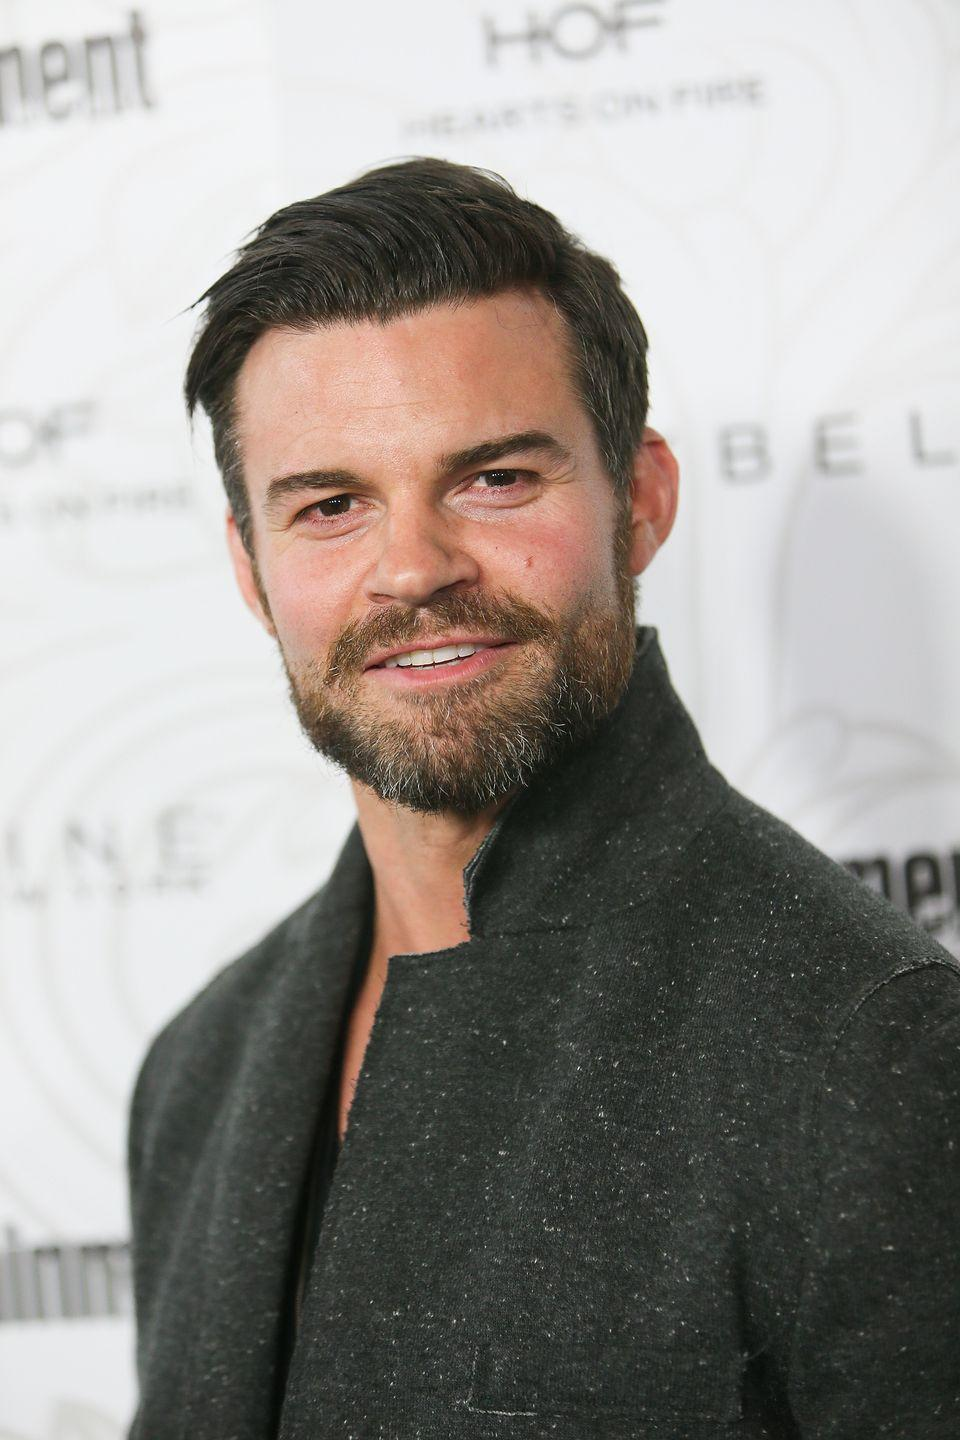 "<p>Dr. Joel Goran was killed off of the medical drama, after deciding he had to take a step back from his busy filming schedule of not just <em>Saving Hope, </em>but also <em>The Originals.</em> ""Most actors who are No. 2 on the callsheet of any show with anywhere between 18 and 22 episodes a year are exhausted from the one show. I was doing 40-42 episodes of TV a year, bouncing between two shows,"" Gillies told <a href=""https://thetvjunkies.com/daniel-gillies-saving-hope-finale/"" rel=""nofollow noopener"" target=""_blank"" data-ylk=""slk:The TV Junkies"" class=""link rapid-noclick-resp"">The TV Junkies</a>. ""So I put it in [the <em>Saving Hope</em> writers'] minds, and then they approached me later on in the season and surprisingly they sort of acquiesced.""</p>"